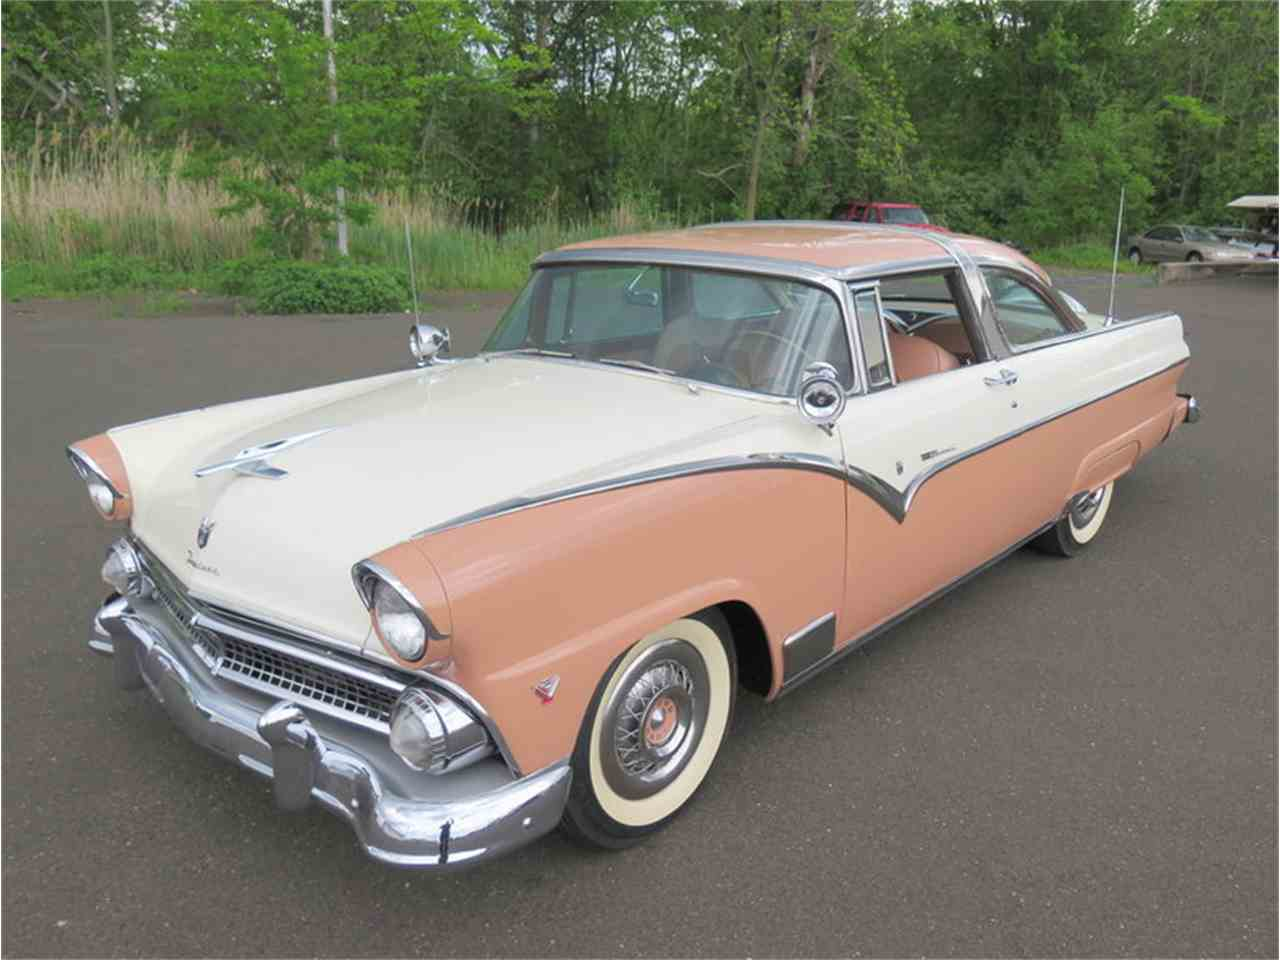 1955 ford fairlane crown victoria blog cars on line - 1955 Ford Fairlane Crown Victoria For Sale Cc 764957